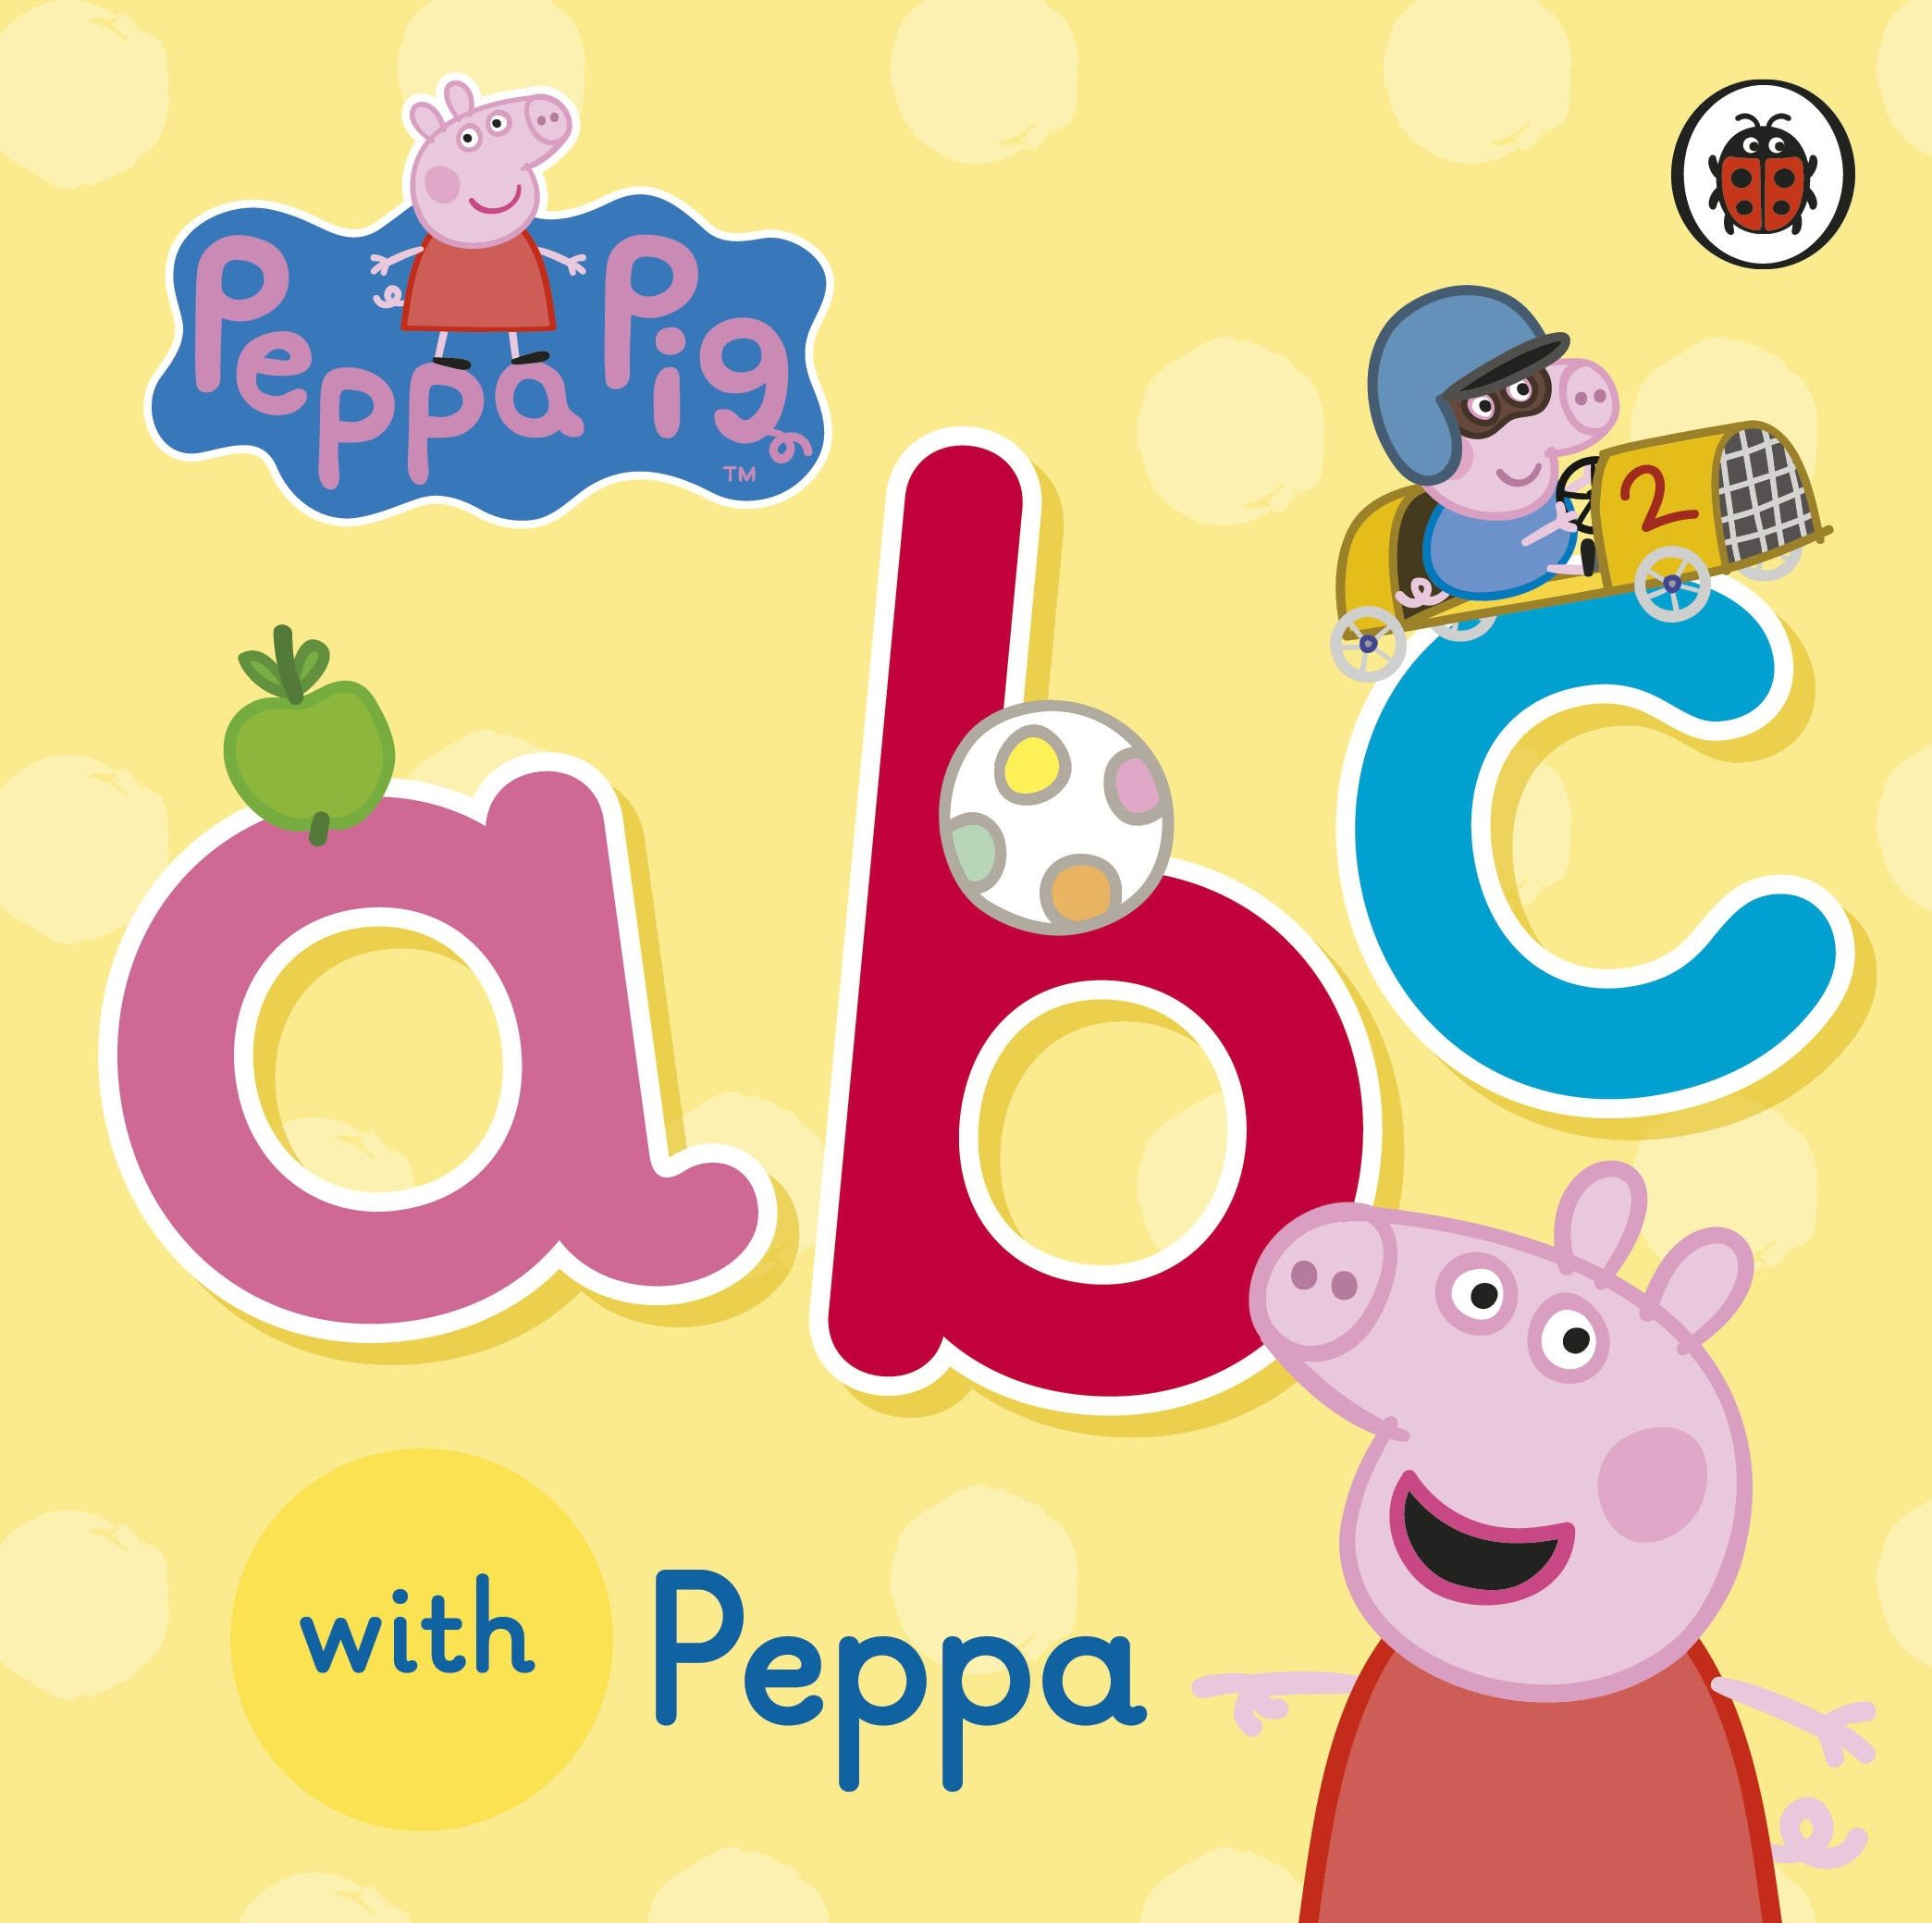 abc with peppa pig peppa pig pinterest pig party